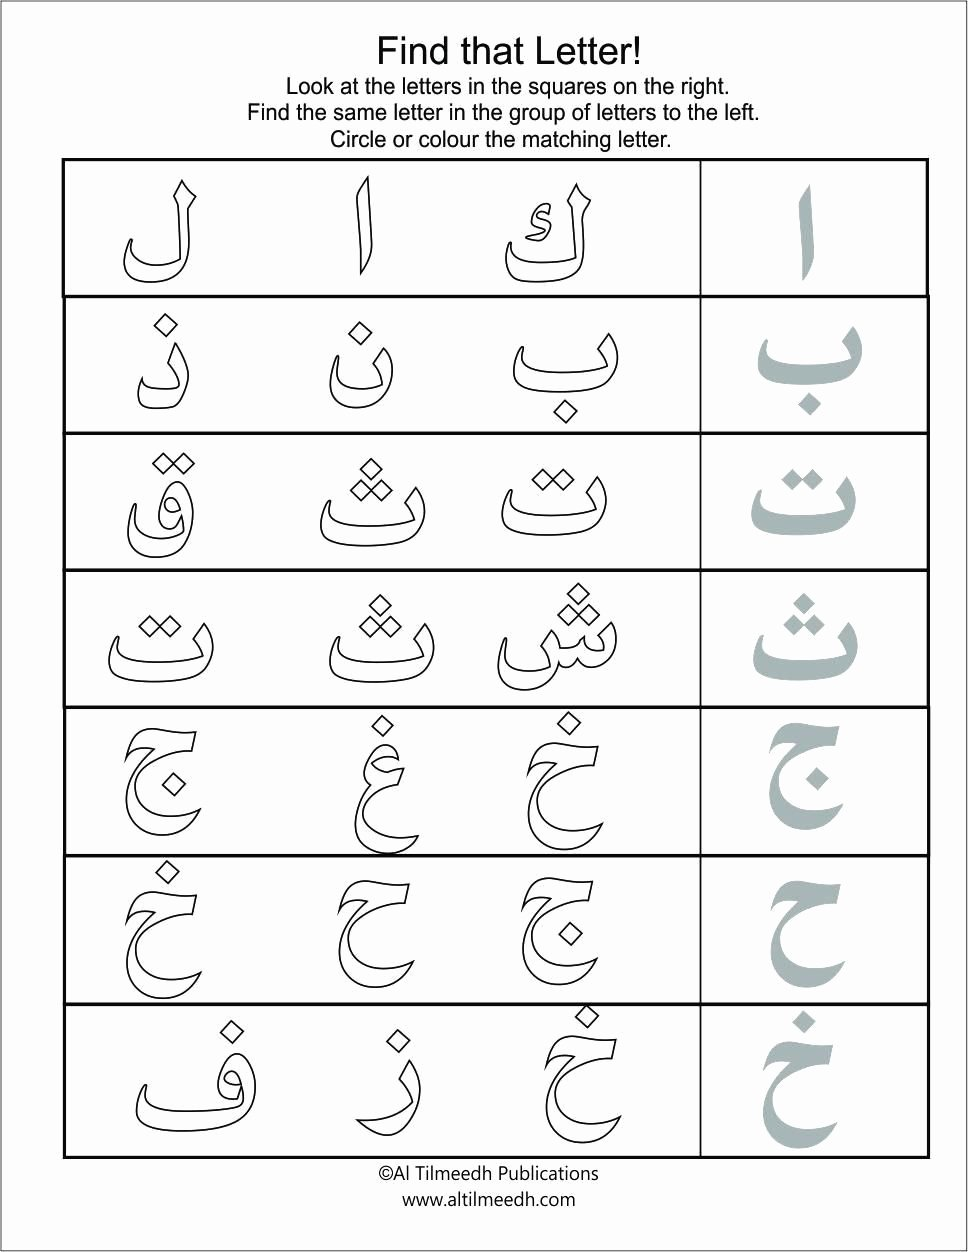 Arabic Alphabet Worksheets for Preschoolers Unique Find that Letter